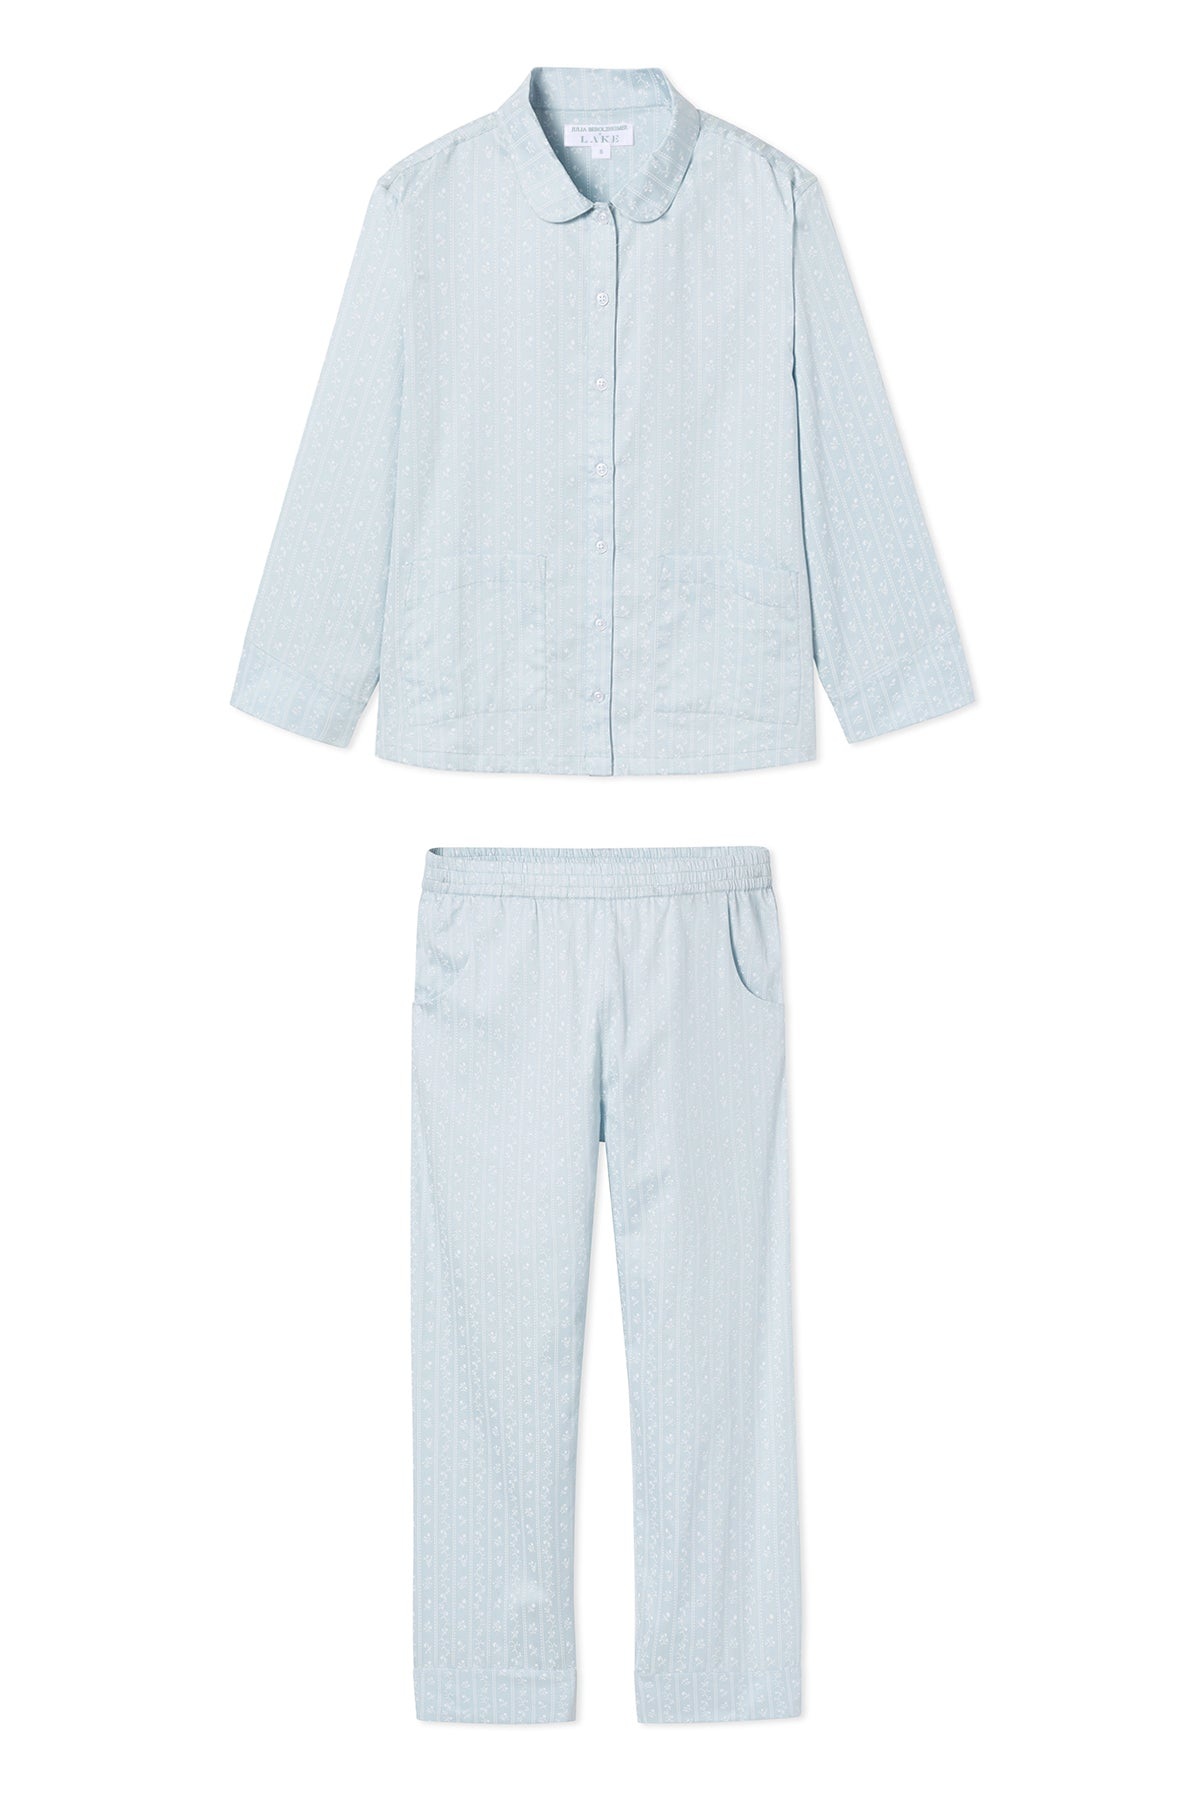 JB x LAKE Poplin Pants Set in Blue Garden